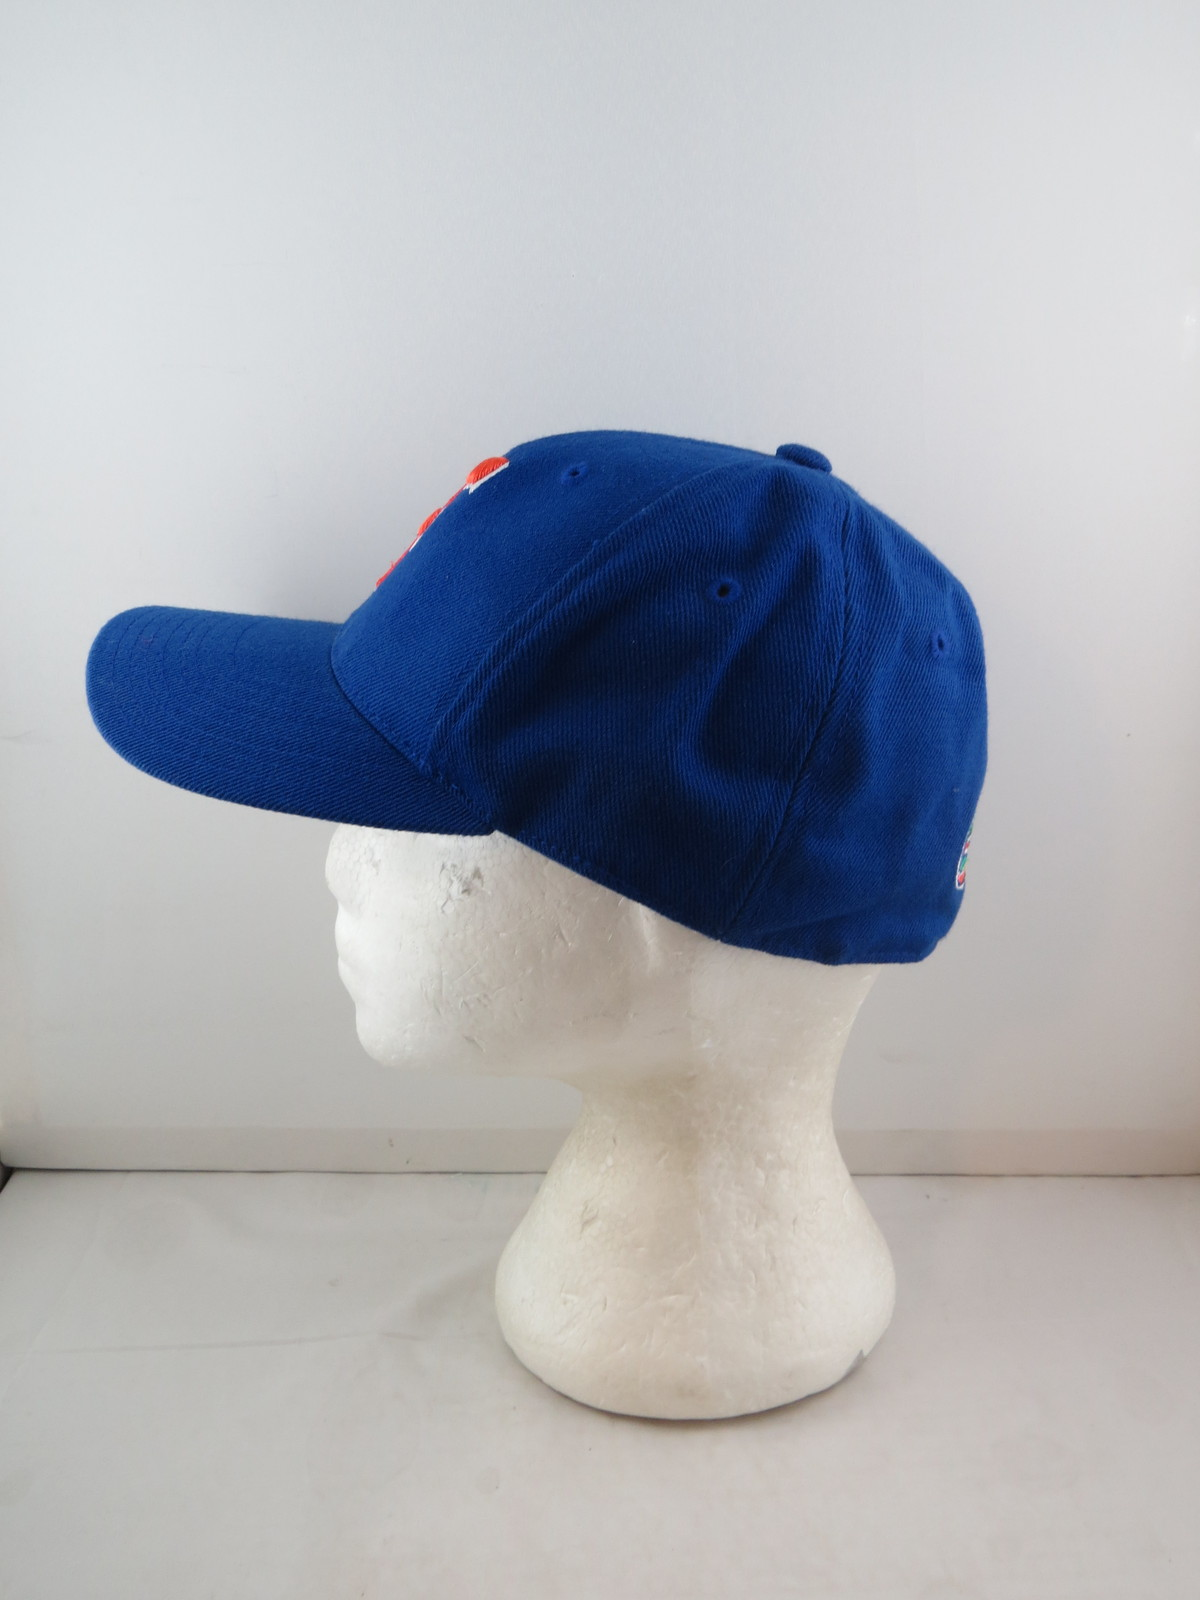 Retro Florida Gators Hat - Fitted by America Needle - Men's Size 7